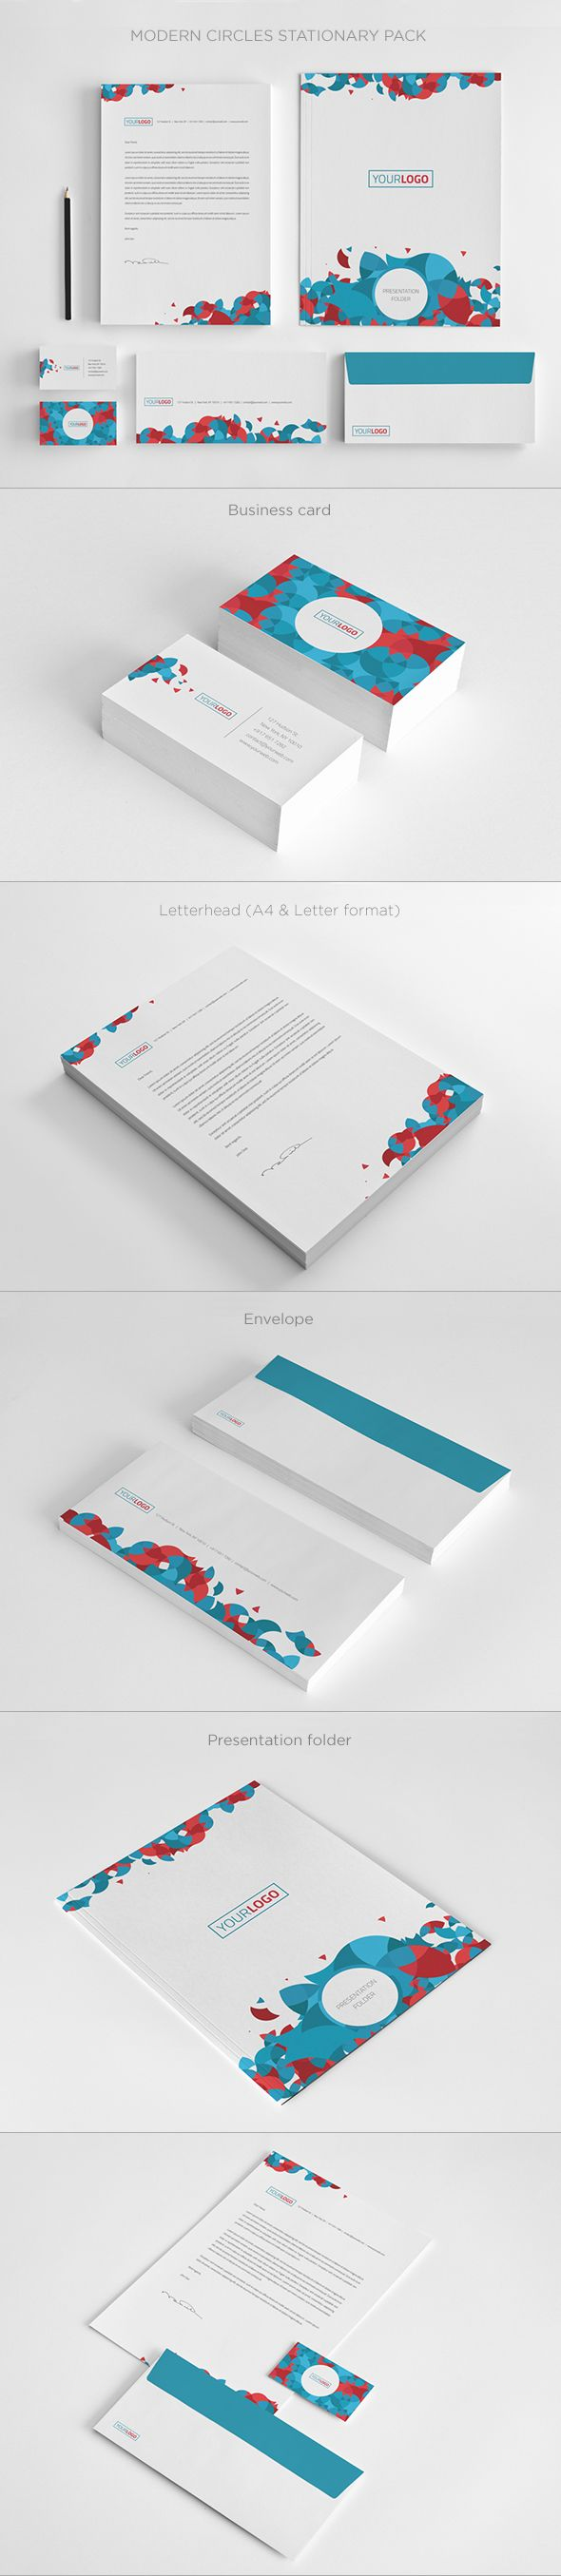 Modern Circles Stationary. Download here: http://graphicriver.net/item/modern-circles-stationary/5522773?ref=abradesign #design #stationary